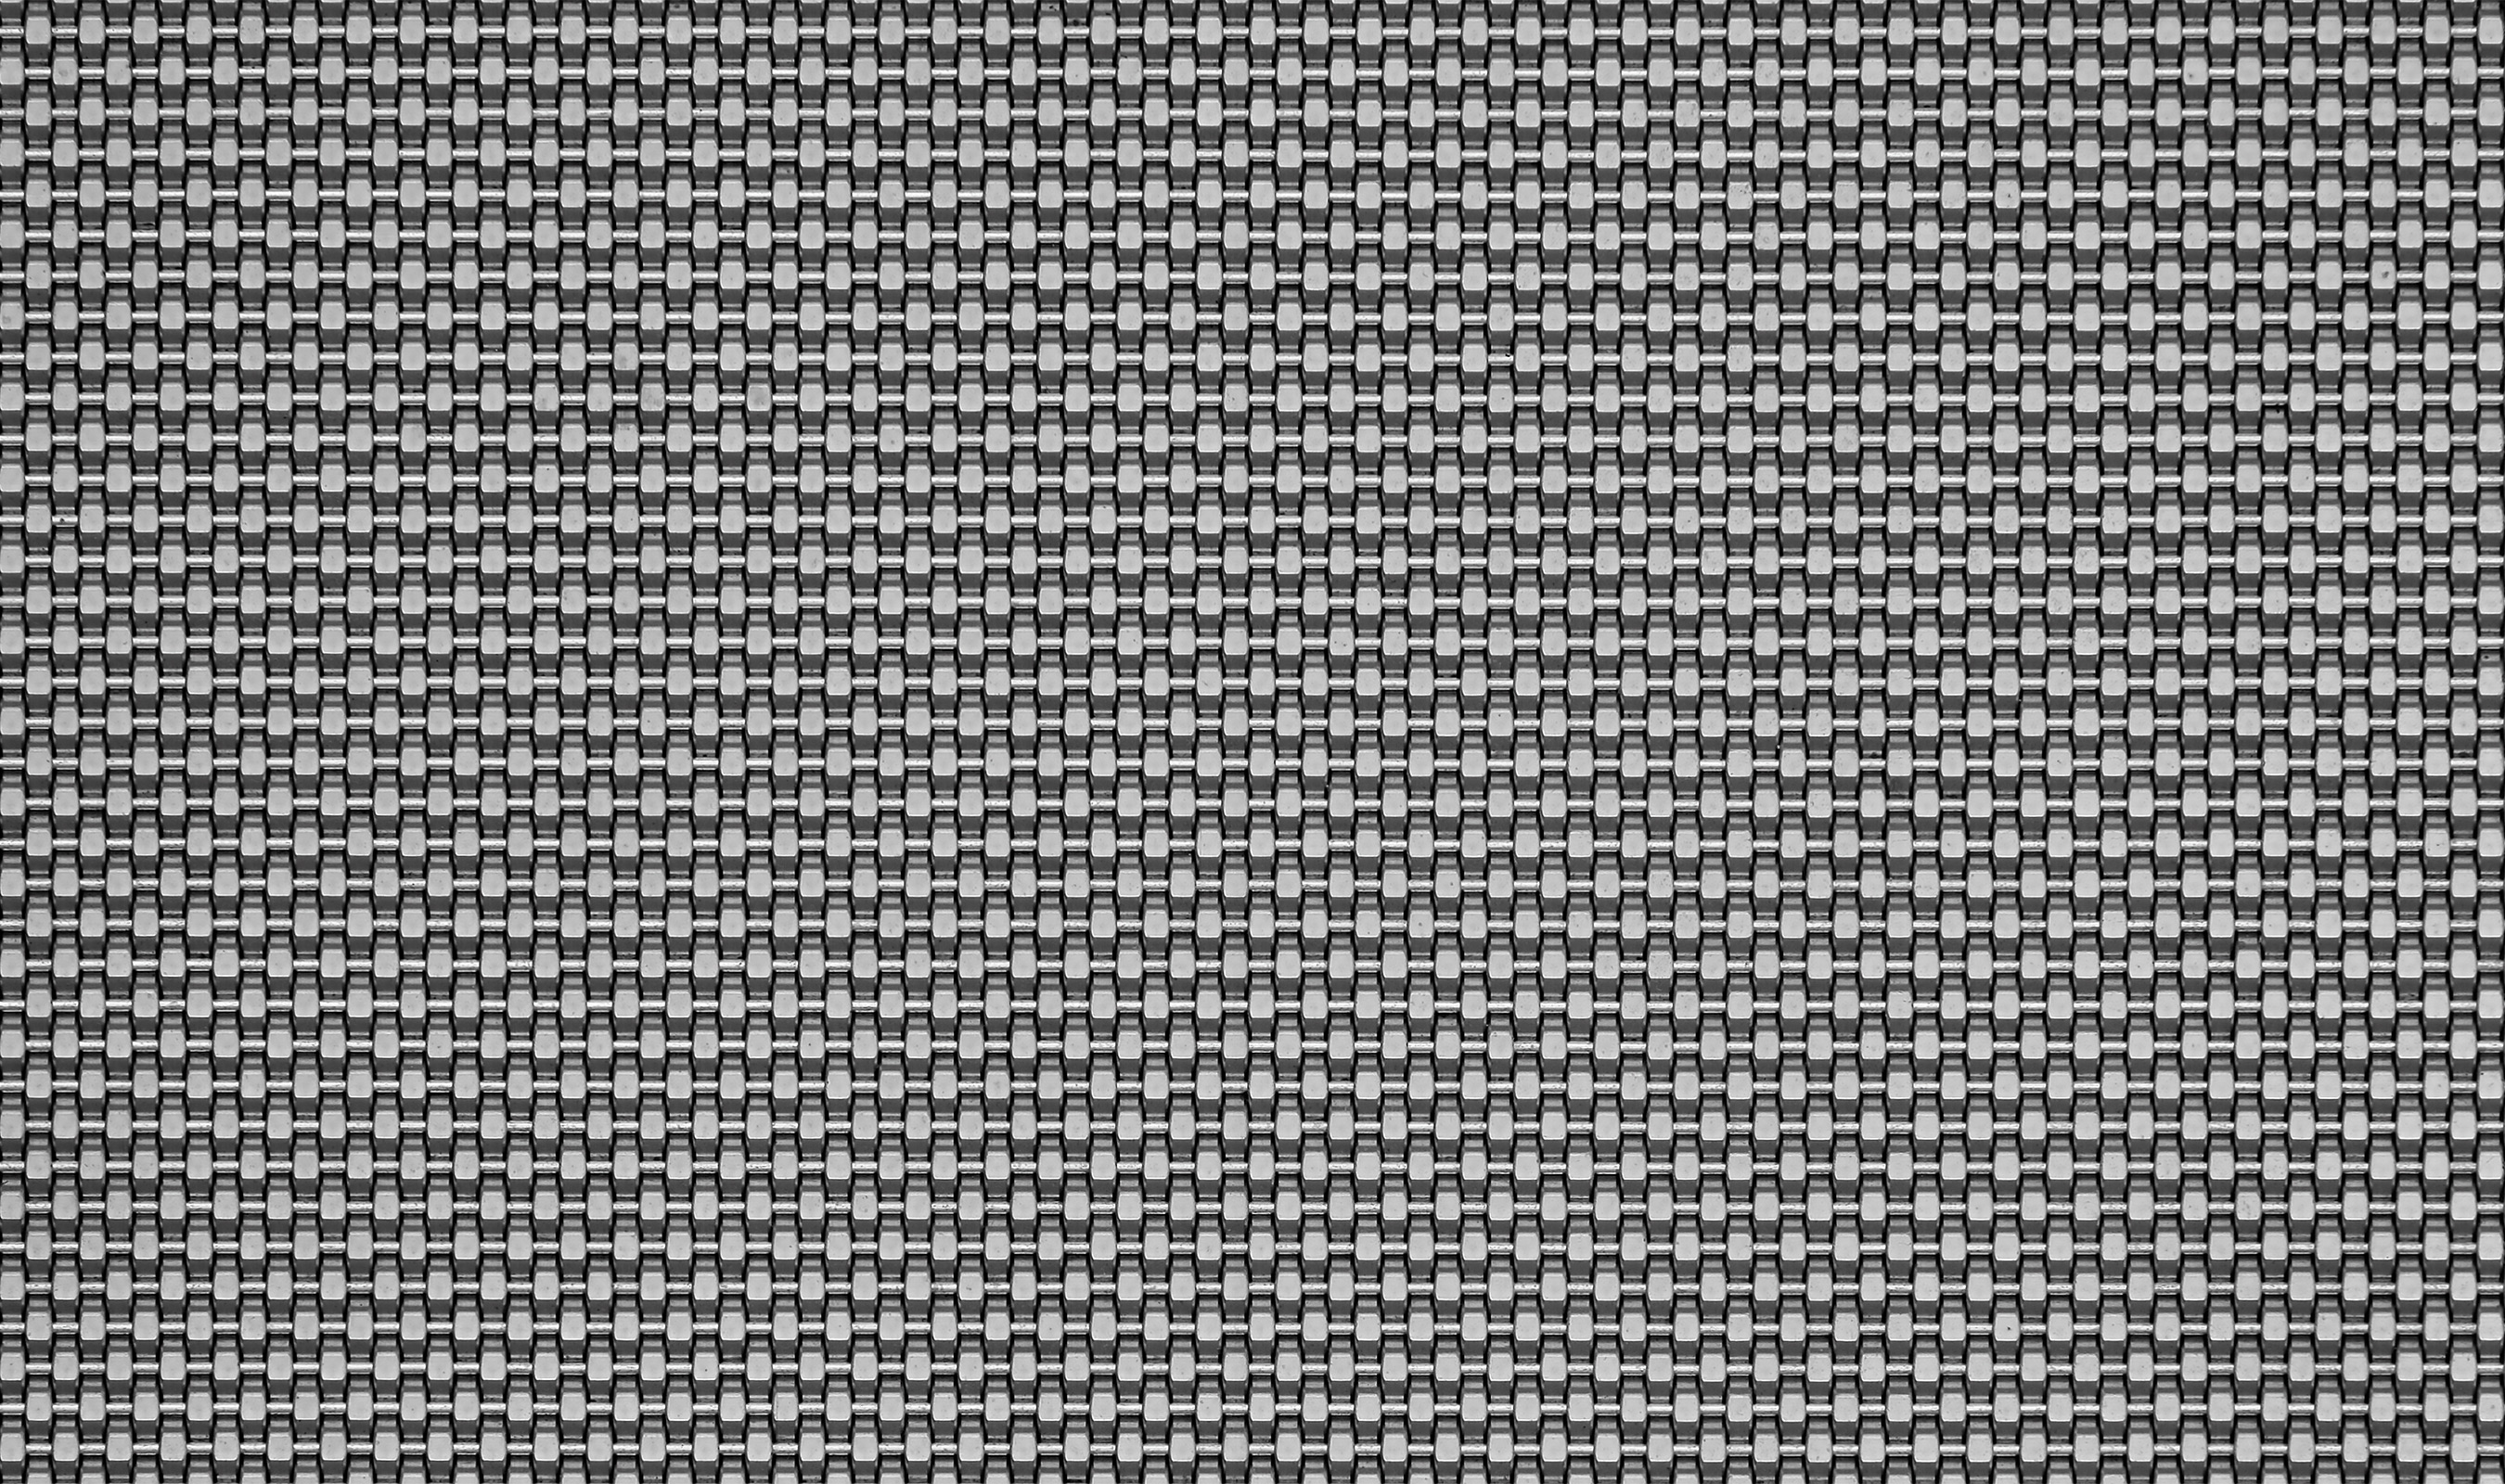 DS-18 opaque Architectural Wire Mesh woven in Stainless Steel